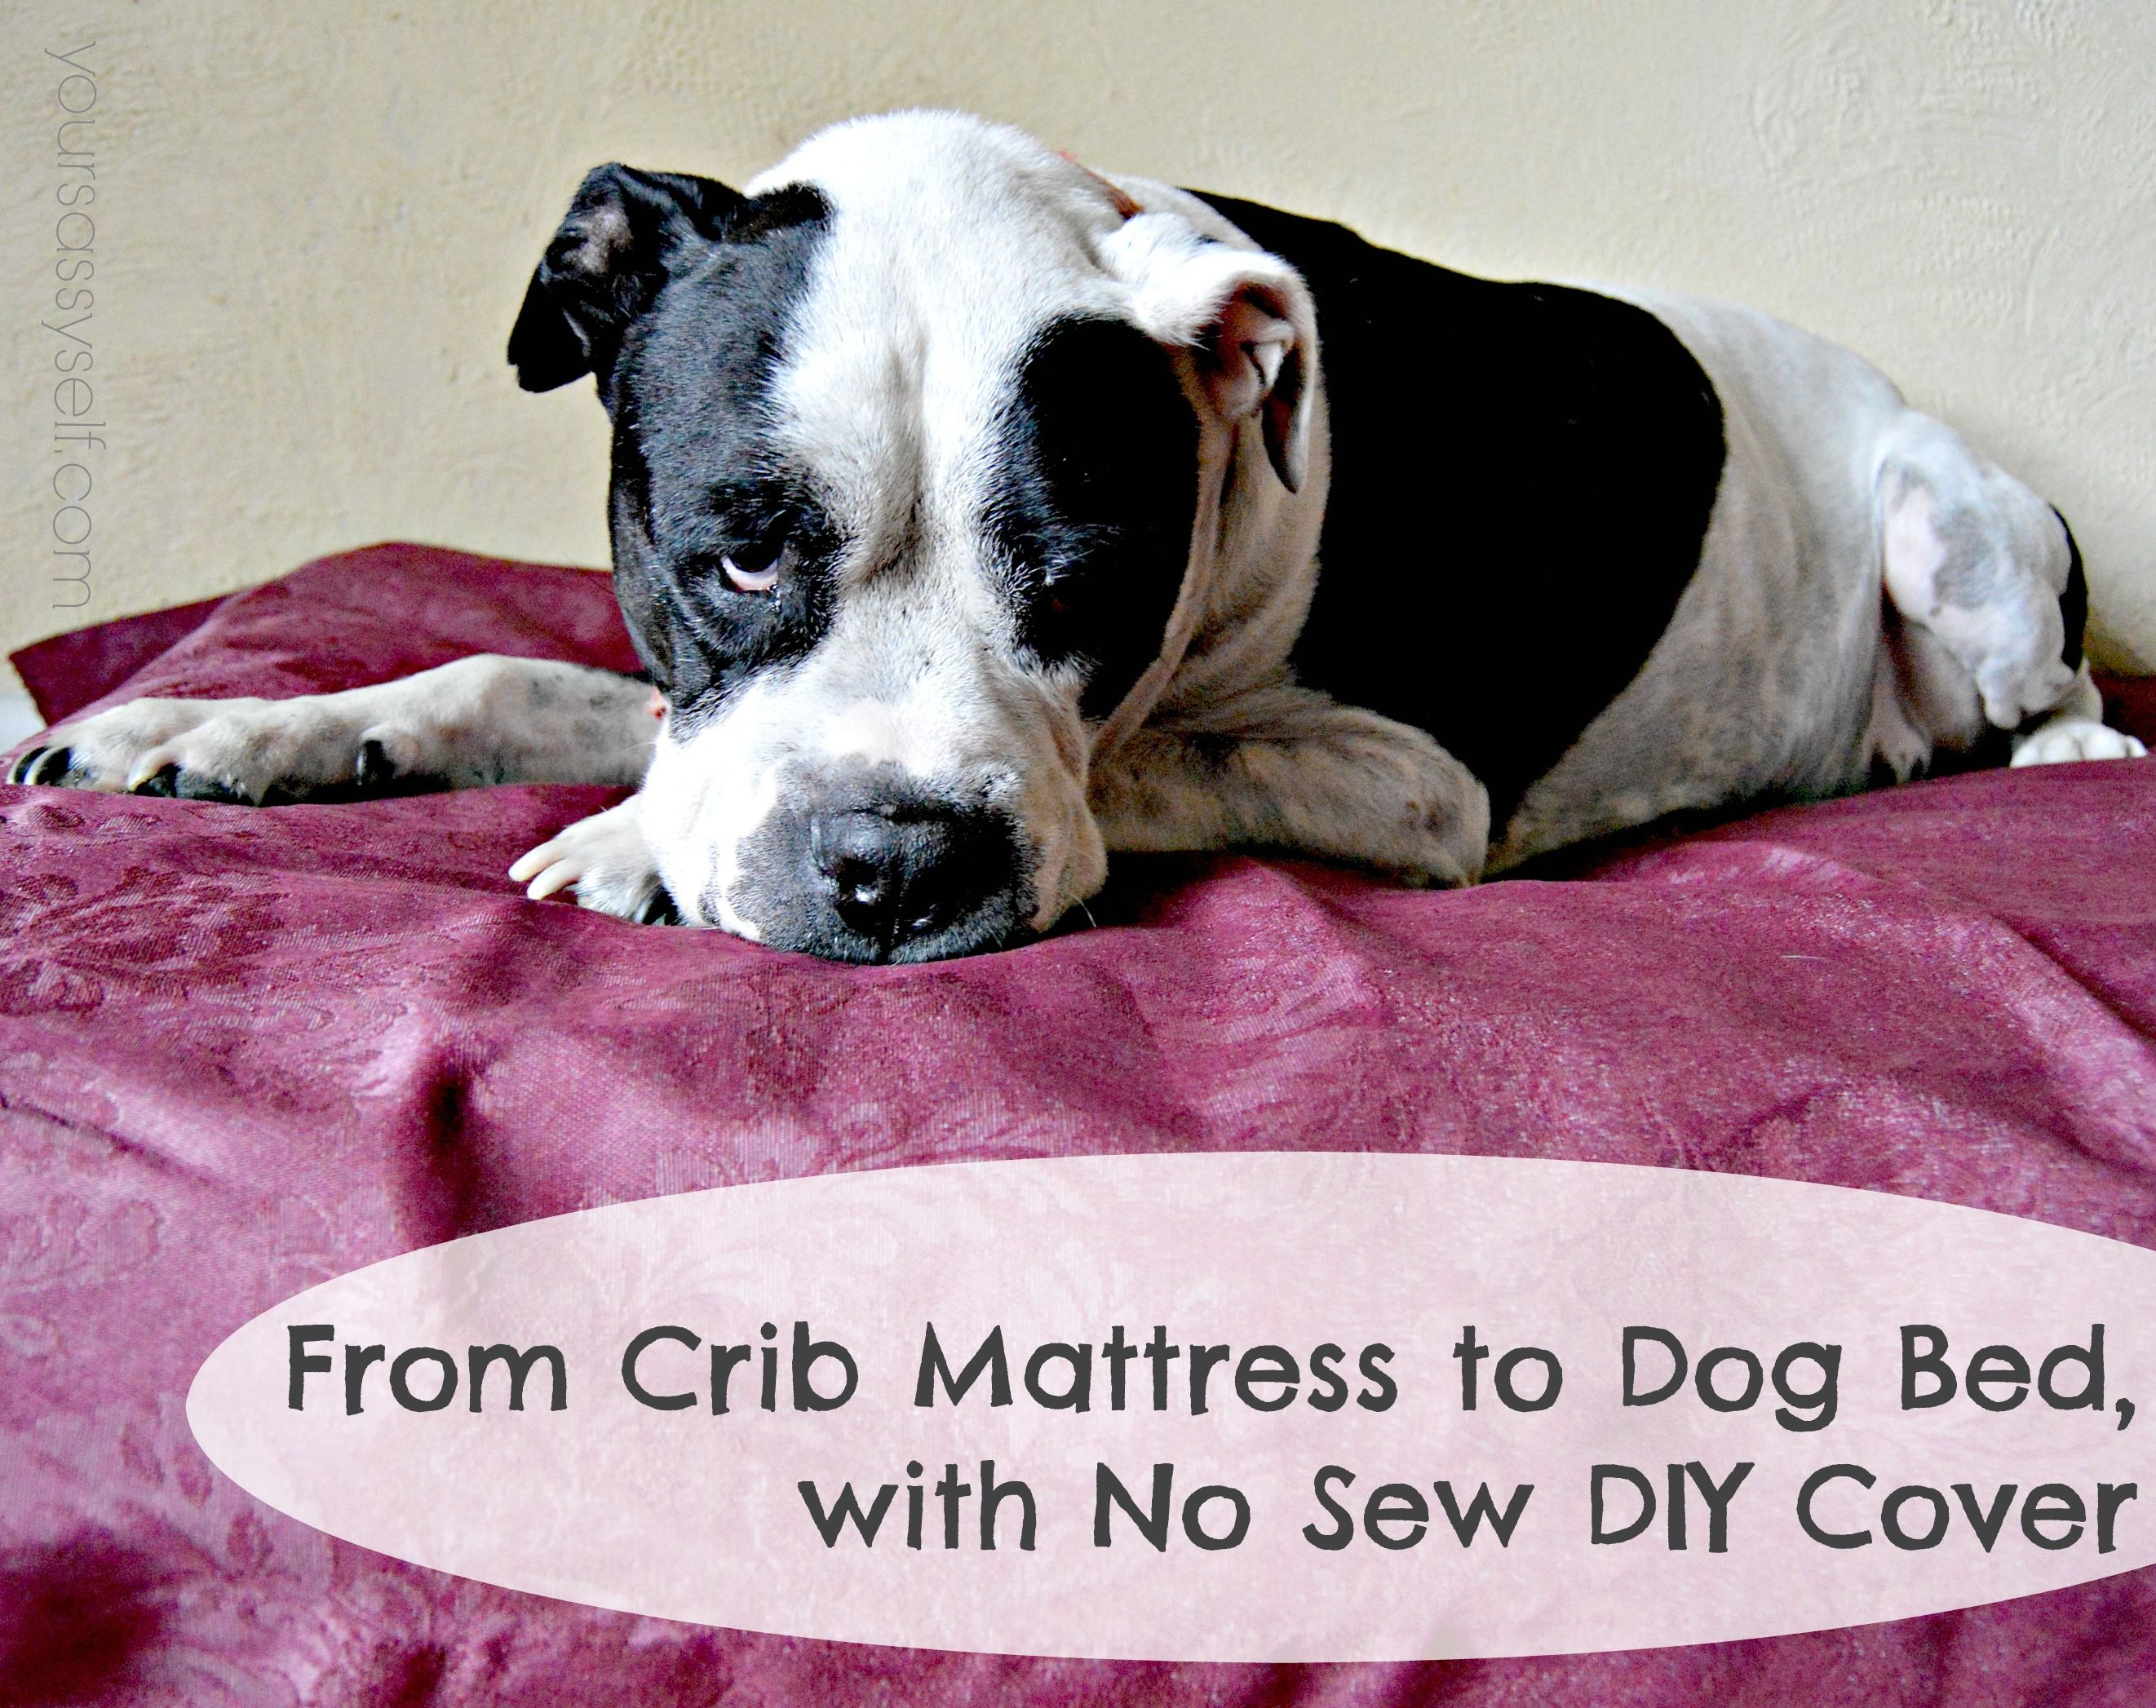 From Crib Mattress to Dog Bed, with No Sew DIY Cover Diy